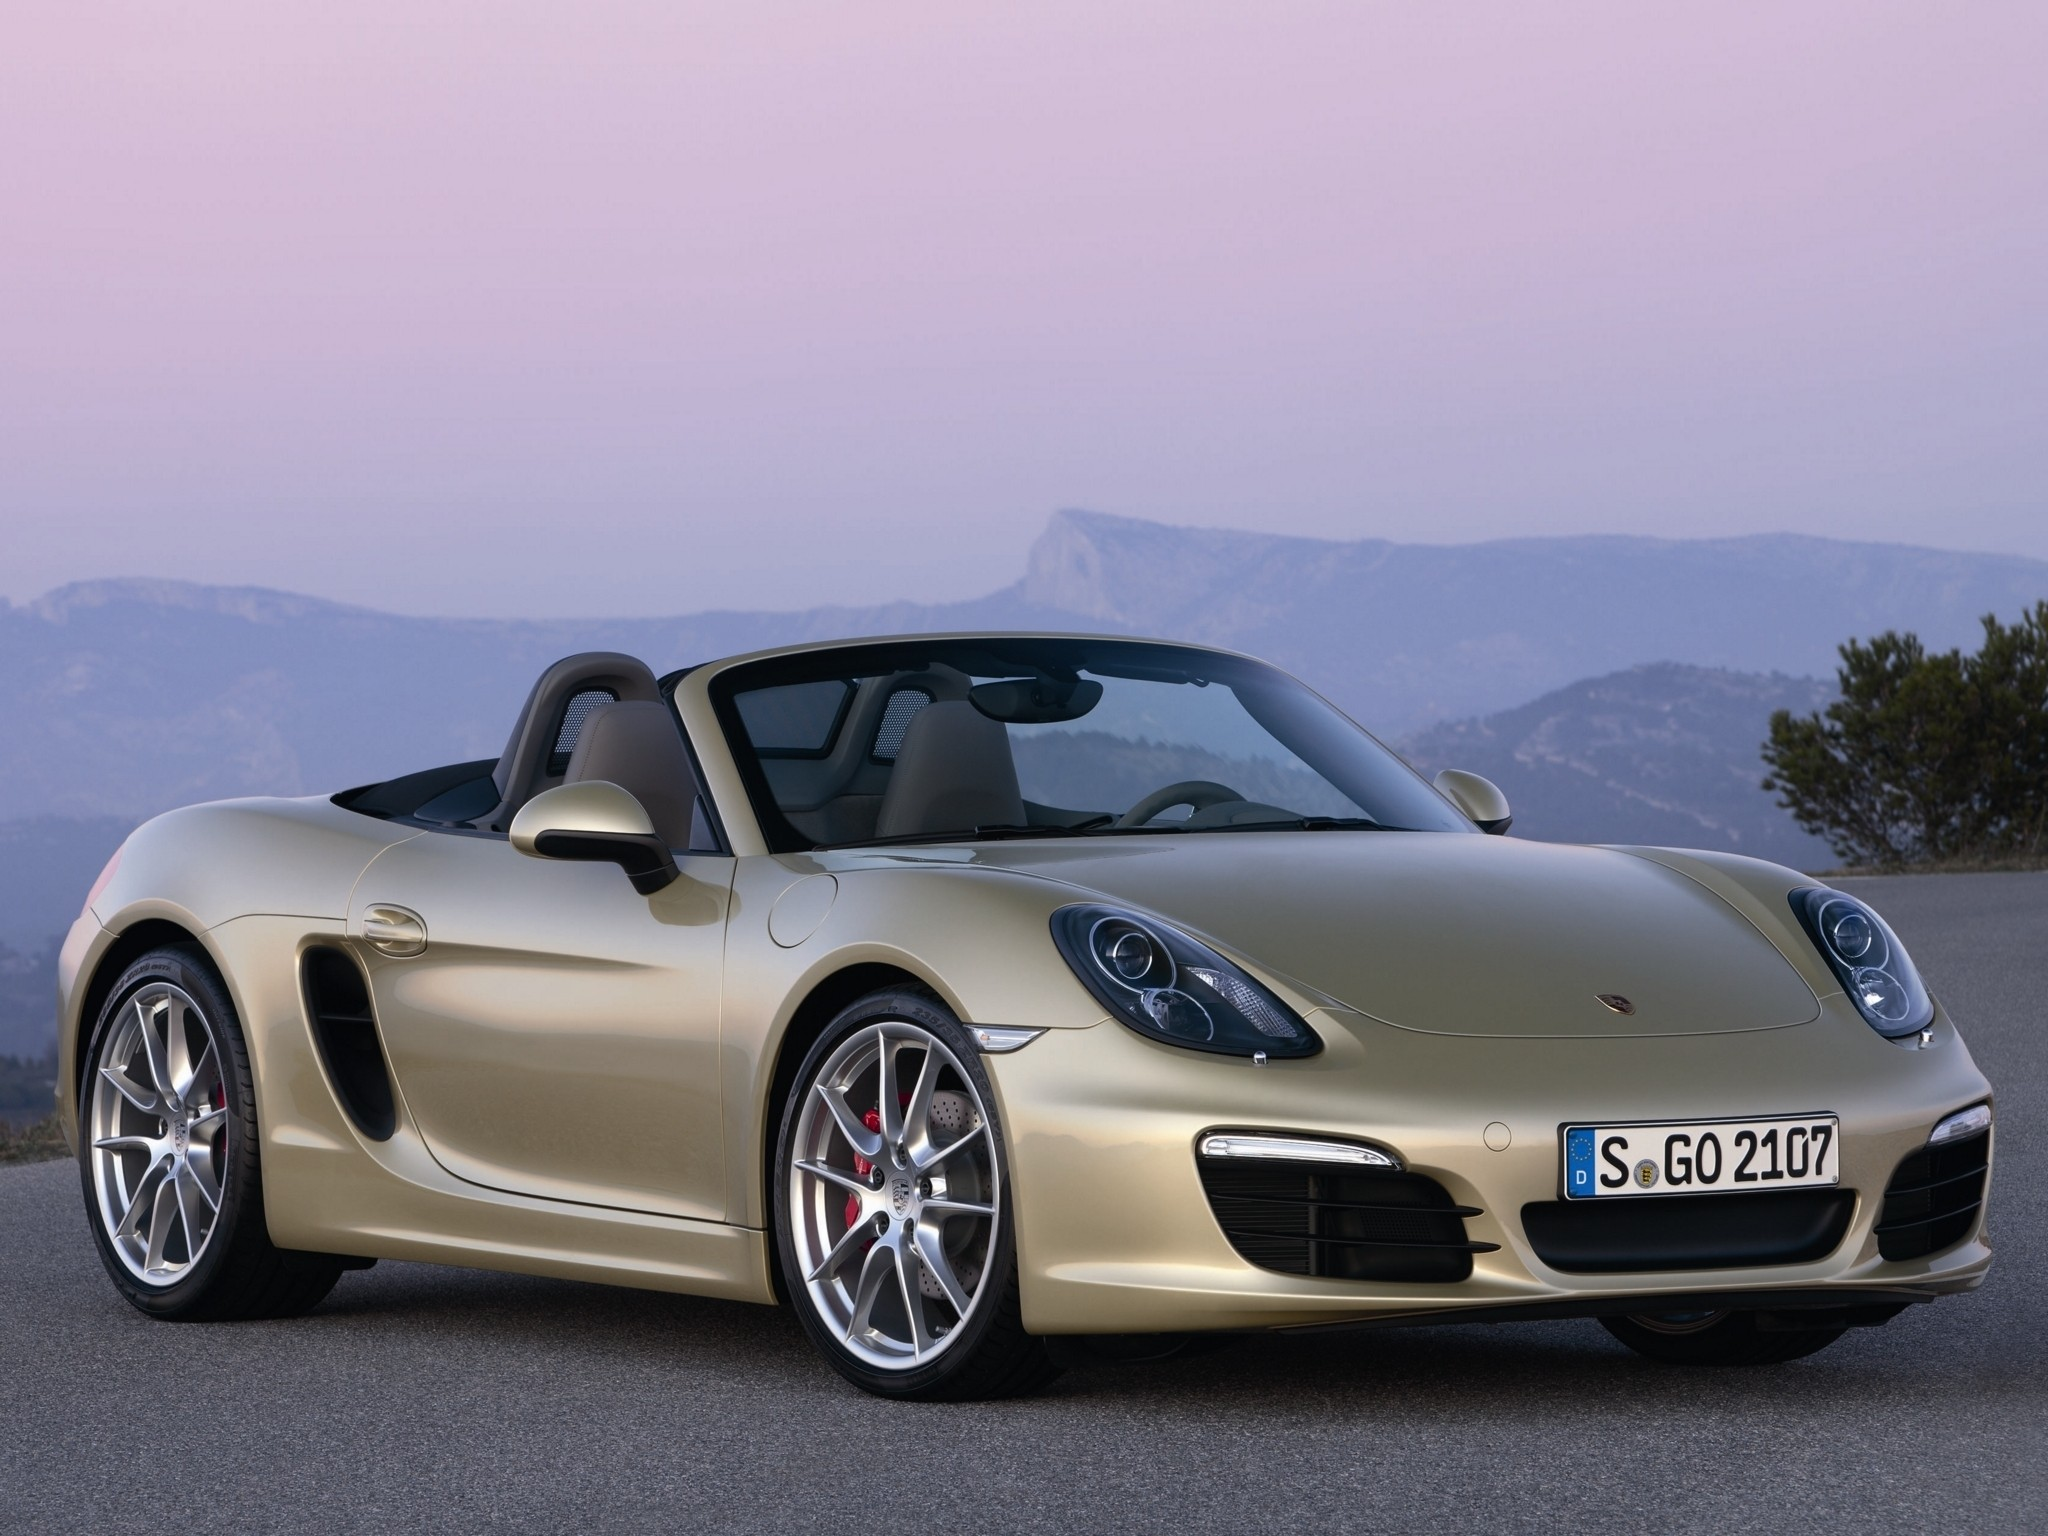 porsche boxster s 981 specs 2012 2013 2014 2015. Black Bedroom Furniture Sets. Home Design Ideas